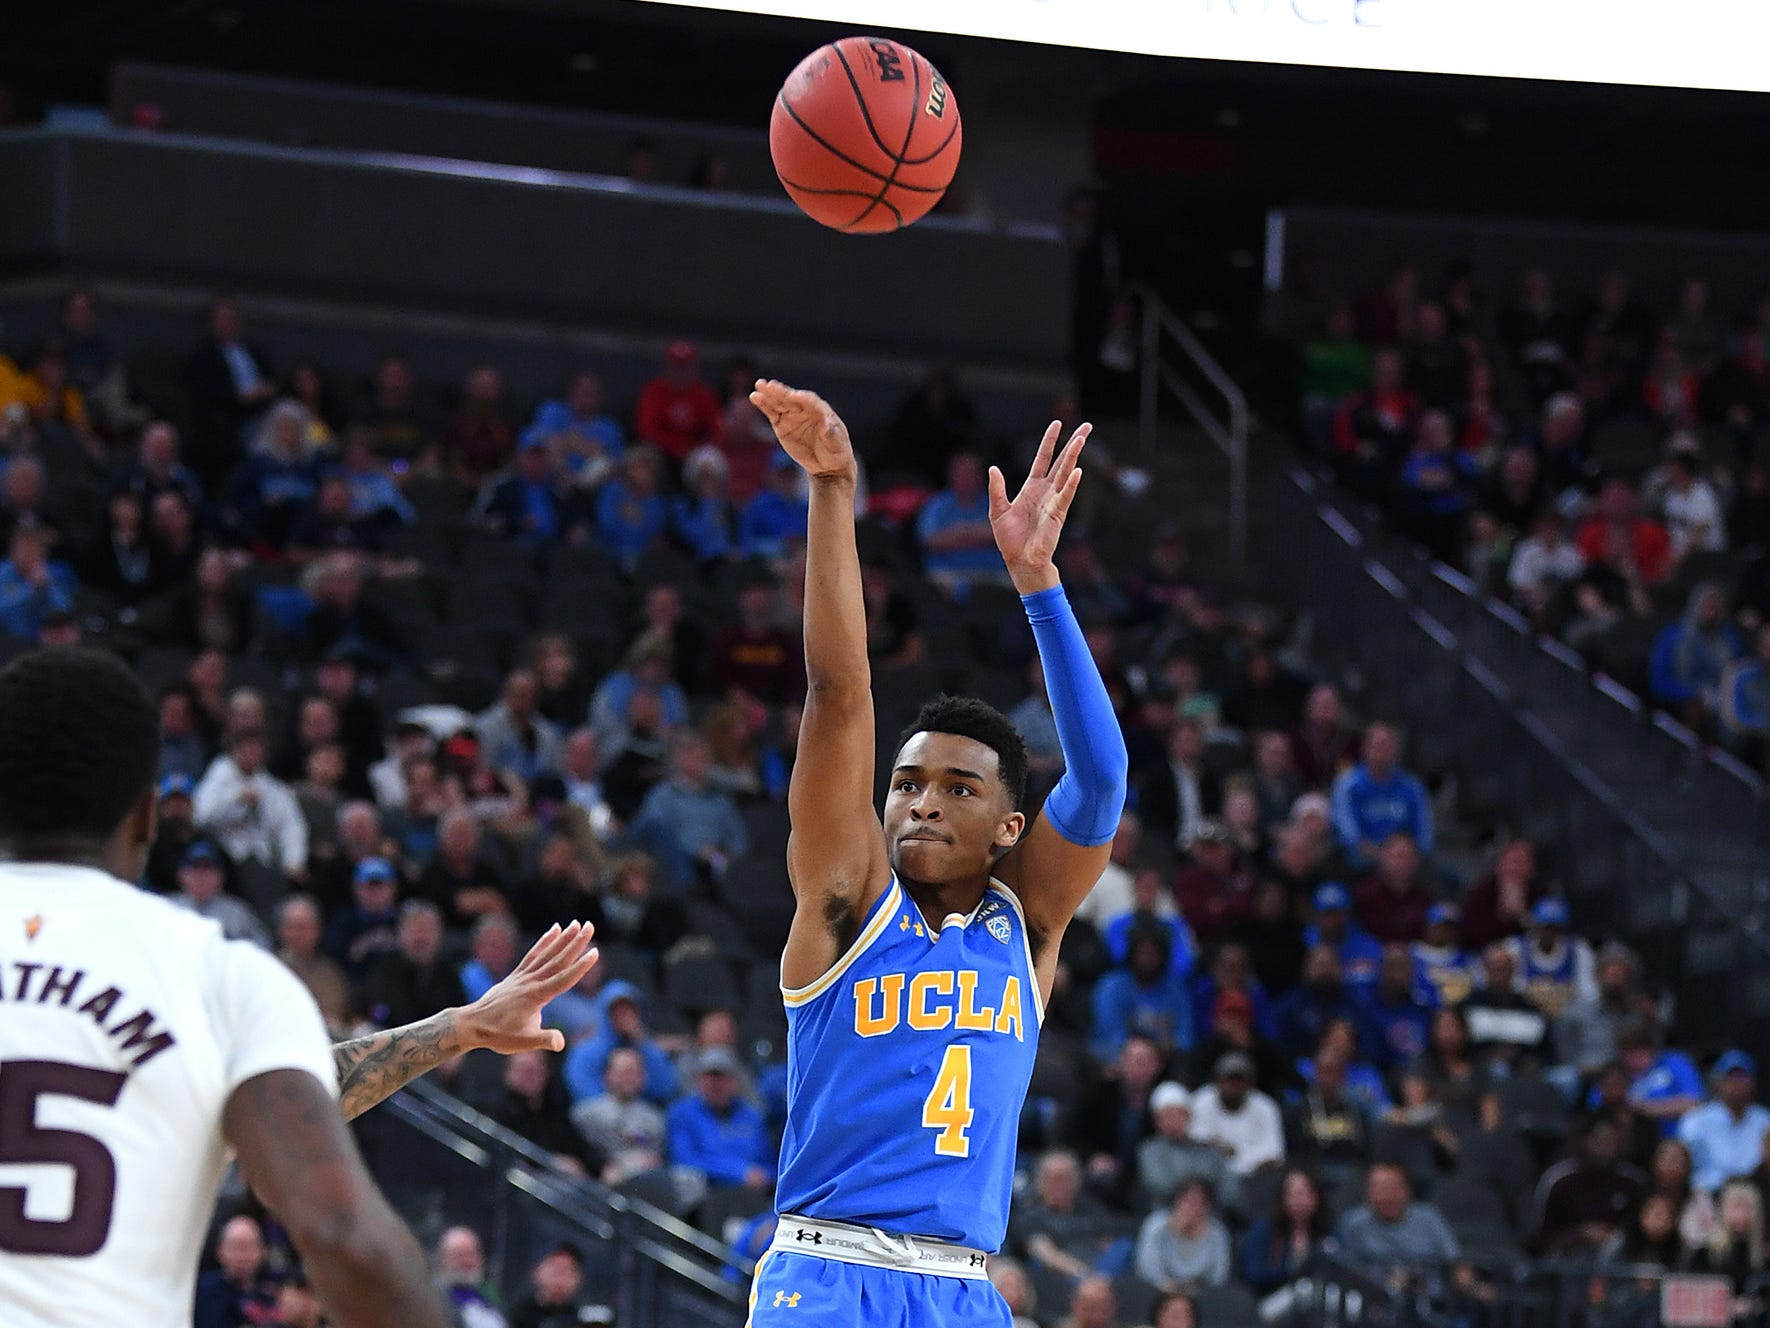 Mar 14, 2019; Las Vegas, NV, United States;UCLA Bruins guard Jaylen Hands (4) shoots during the second half of a Pac-12 conference tournament game against the Arizona State Sun Devils at T-Mobile Arena.